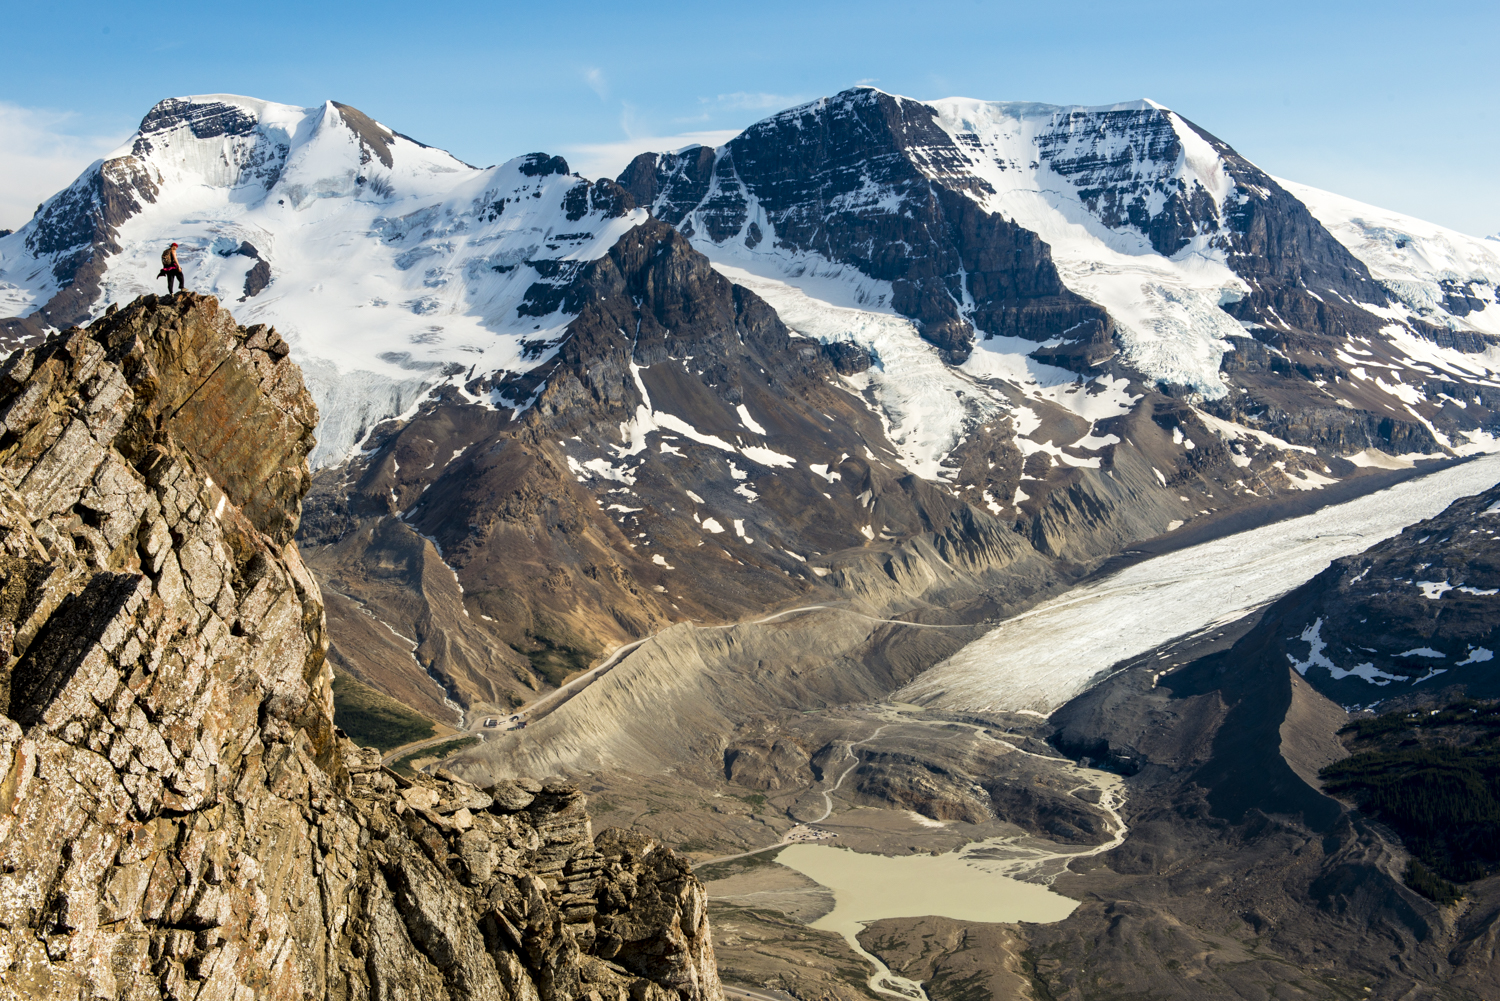 A hiker enjoys grandeur views of the Columbian Icefields and glaciers surrounding Mt Athabasca.